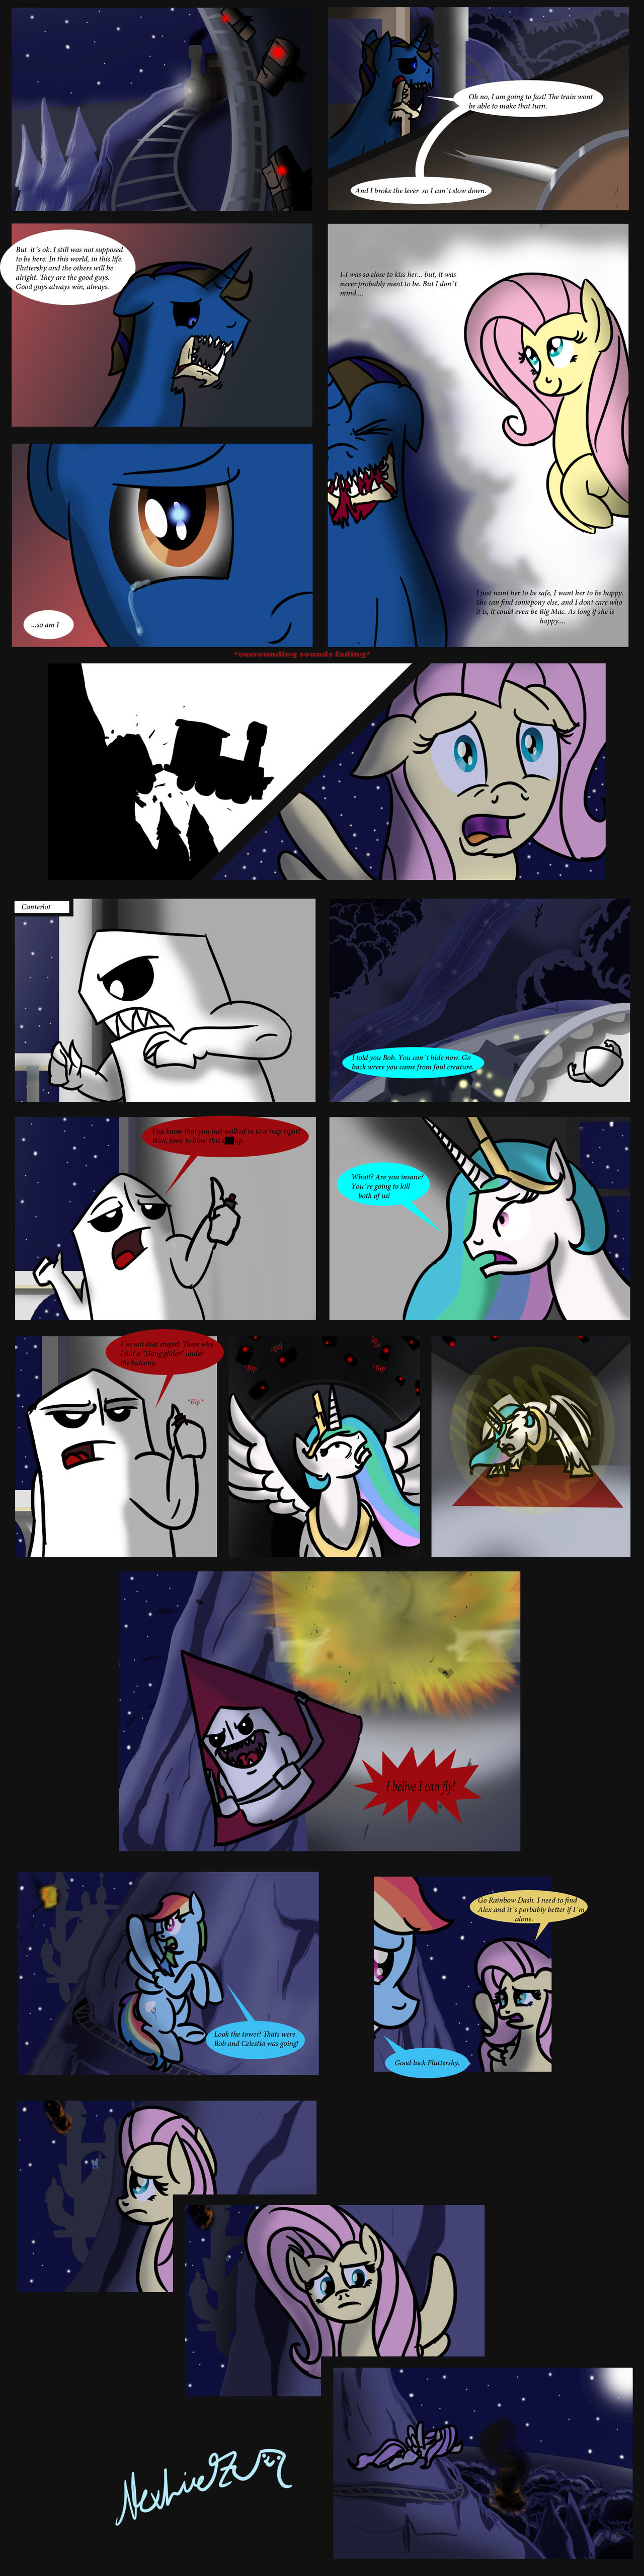 Trip to Equestria page 27 by AlexLive97